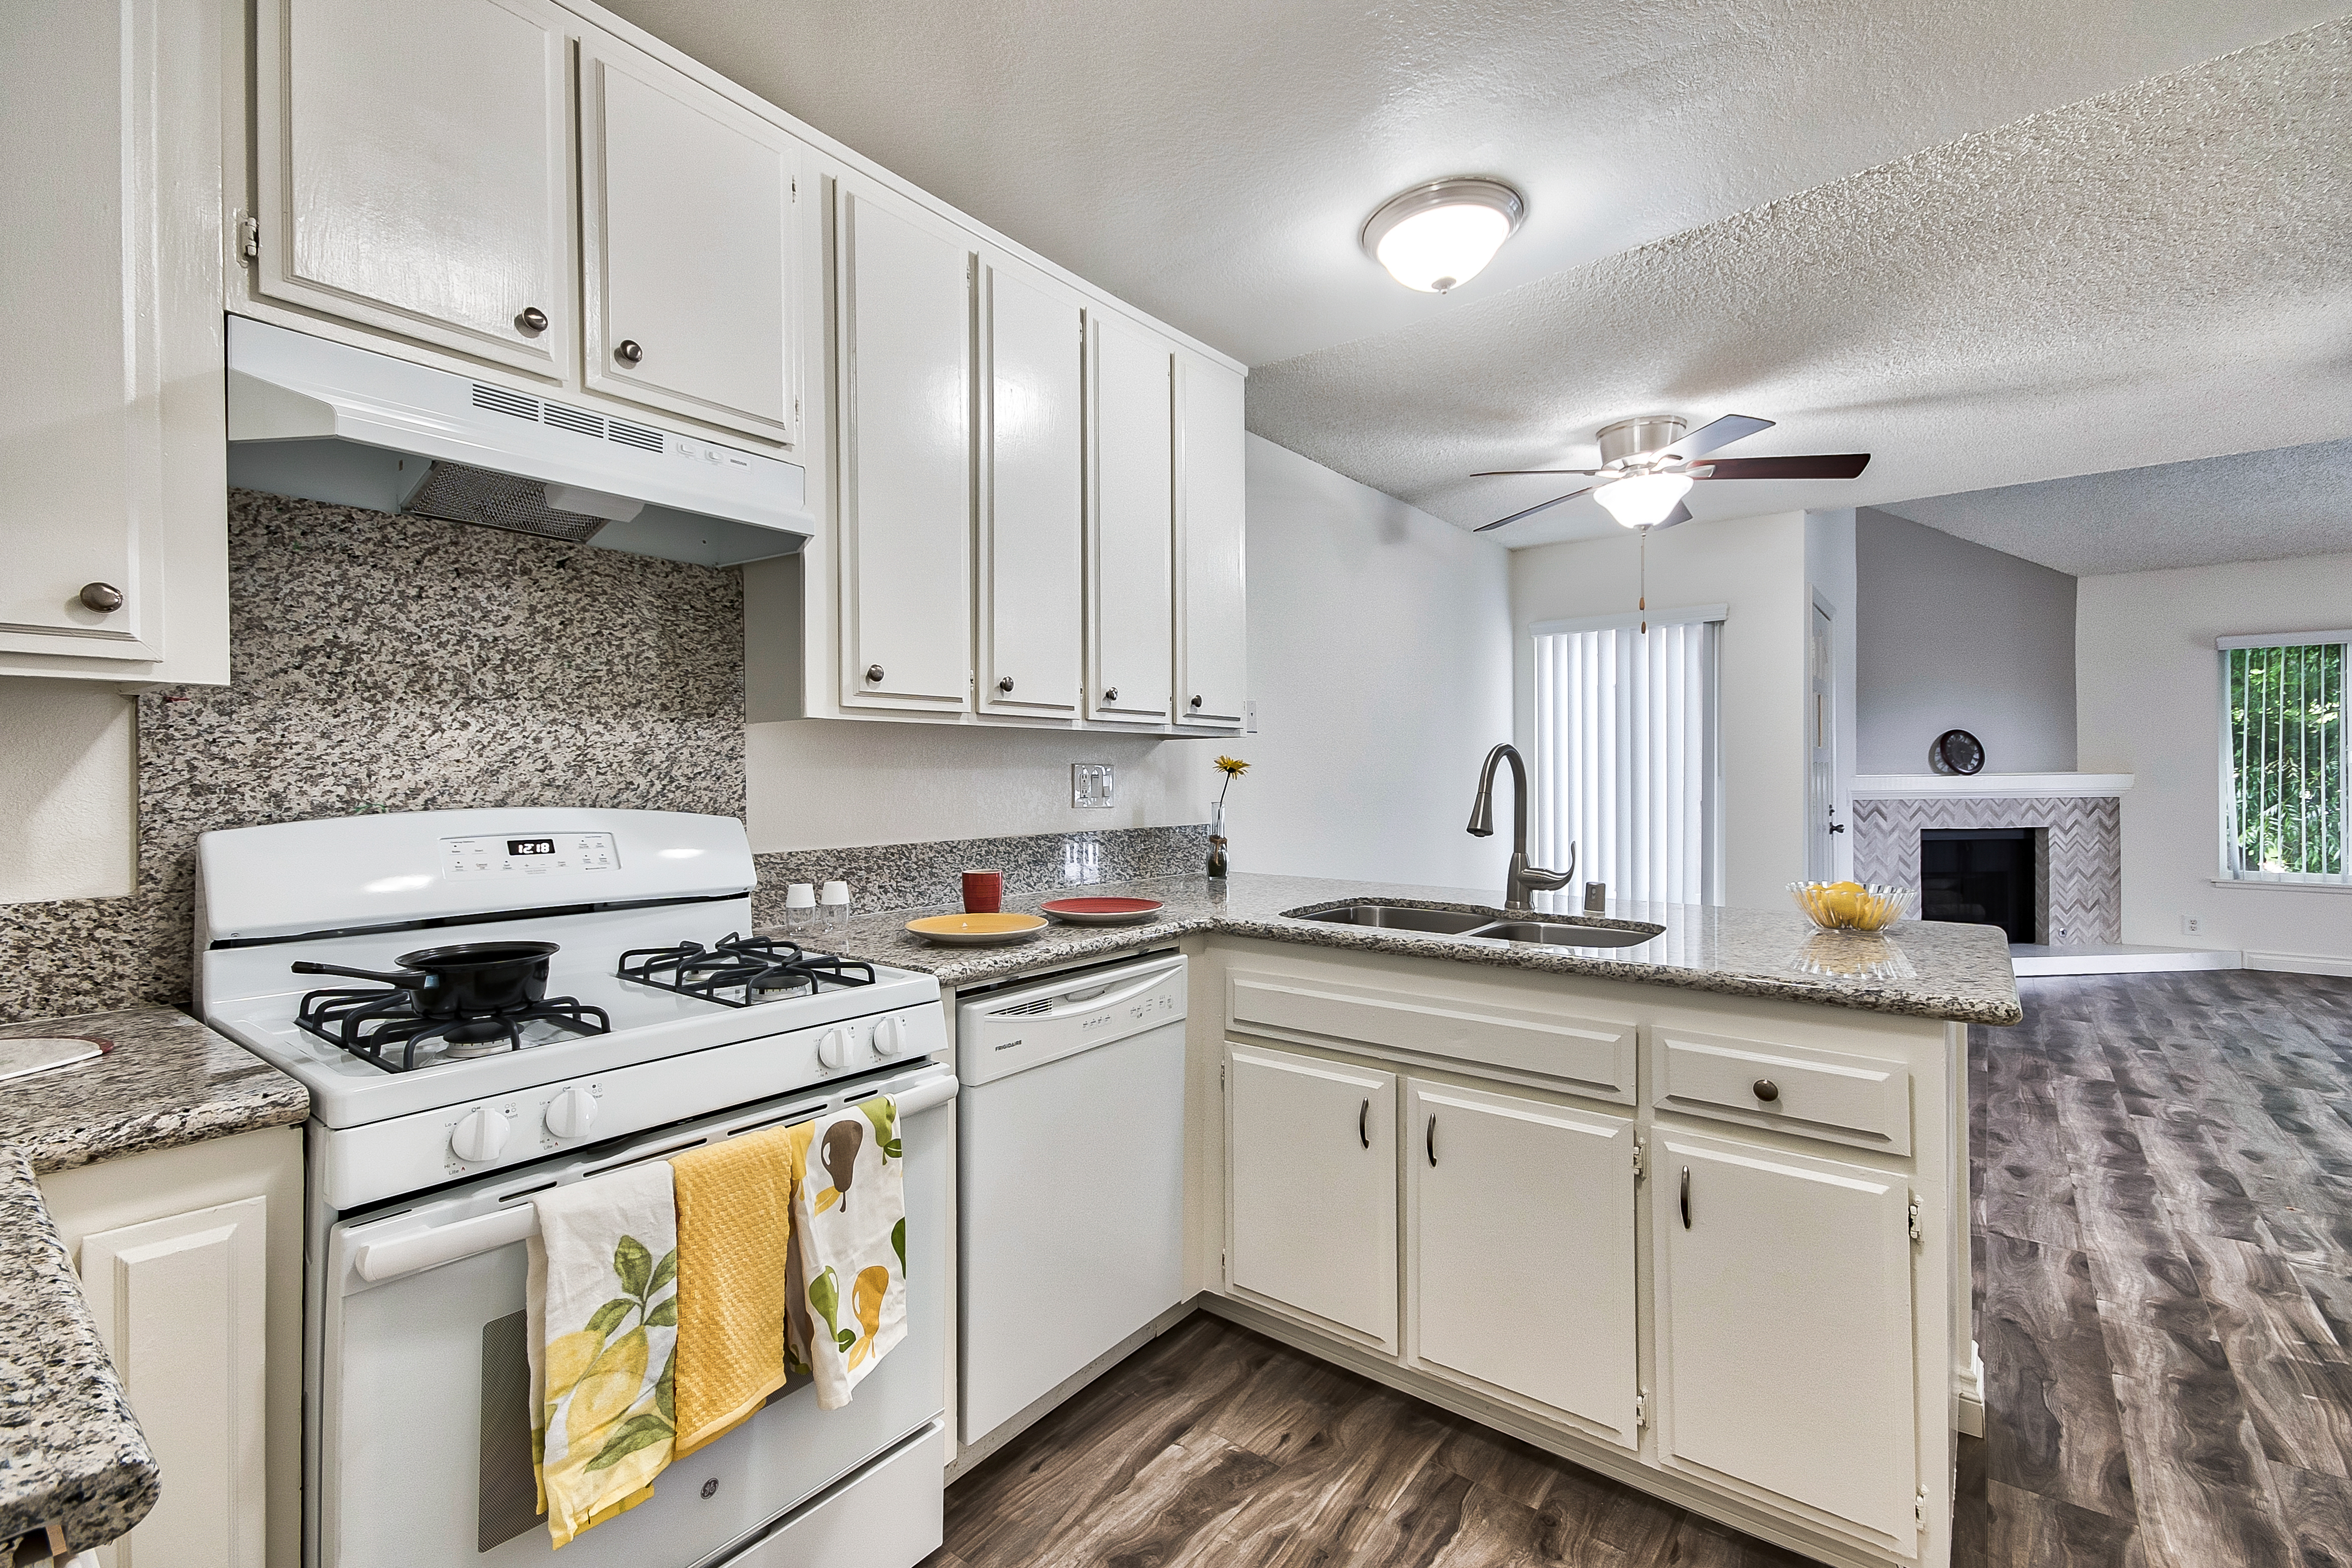 Beachpointe Apartments for rent